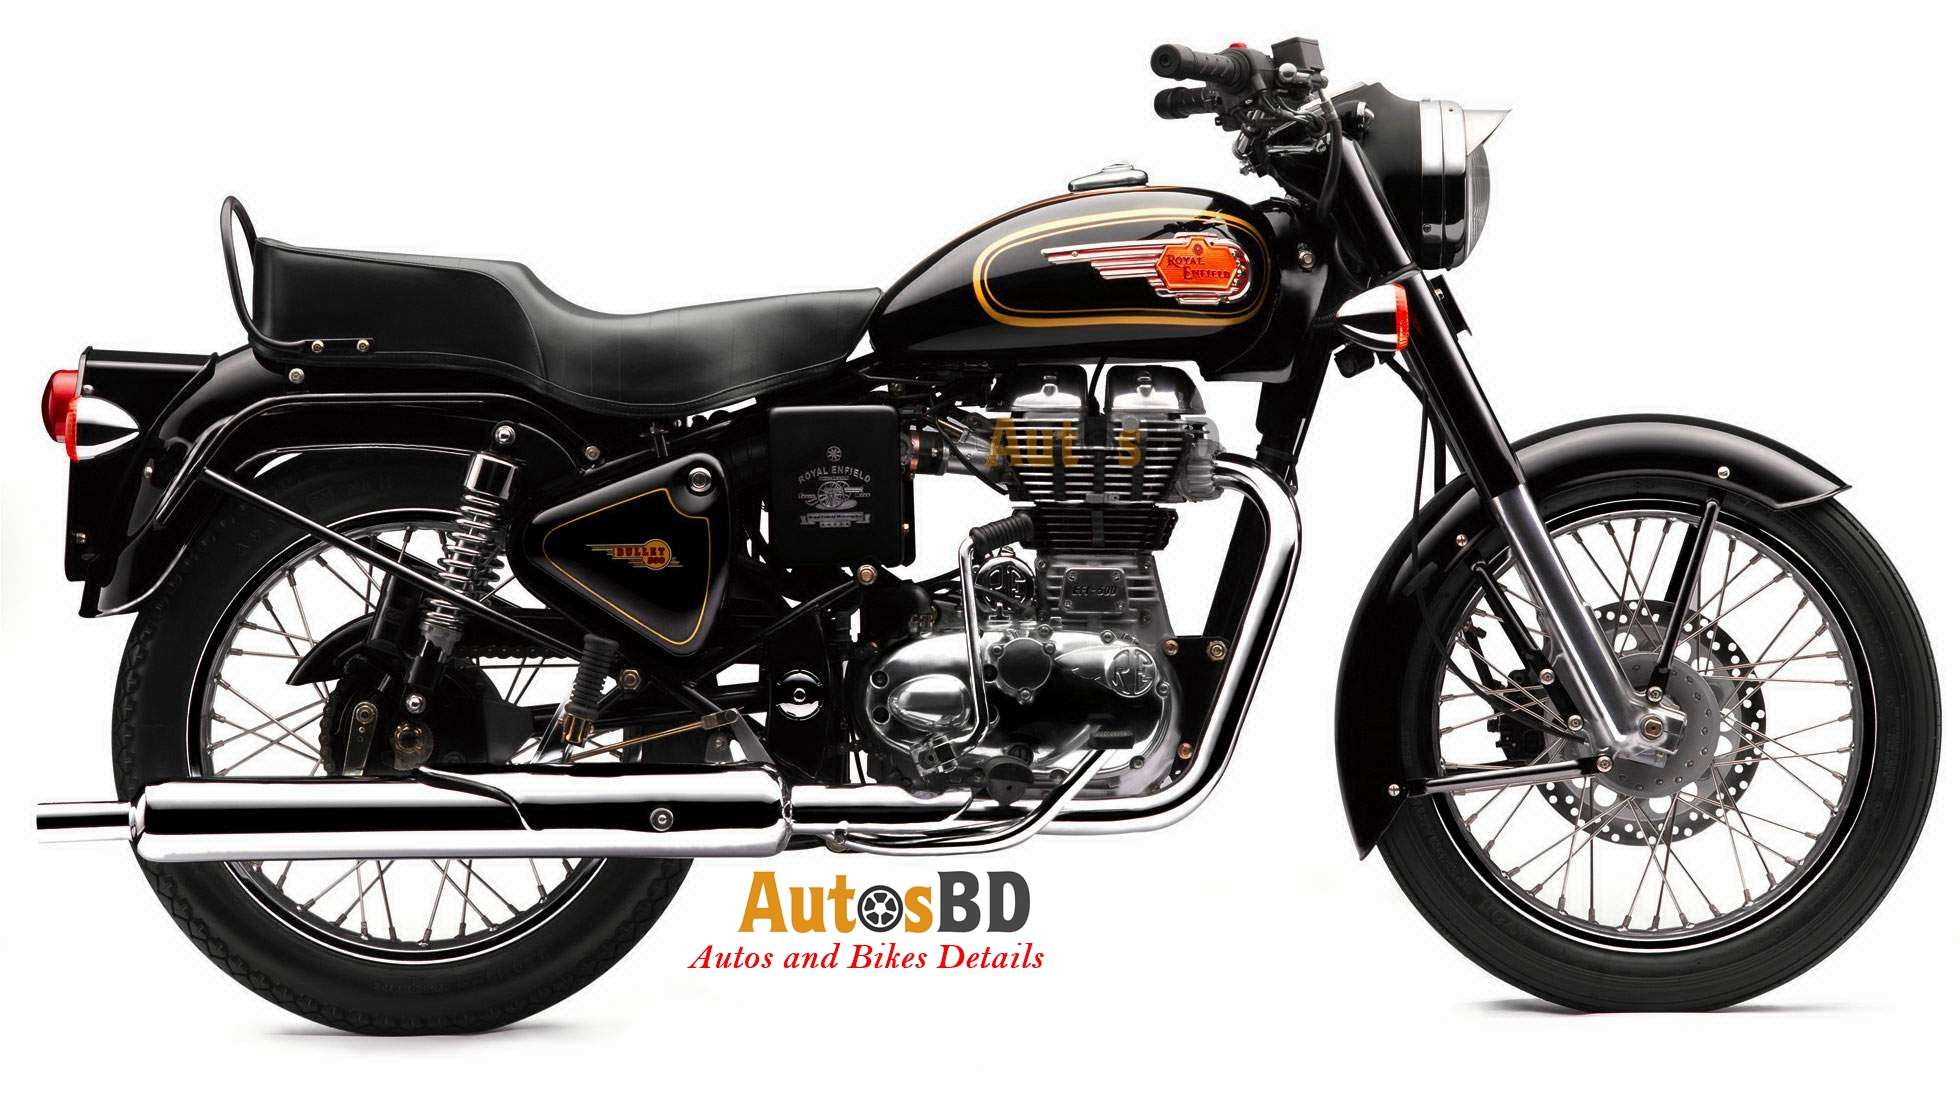 Royal Enfield Bullet 350 Motorcycle Specification